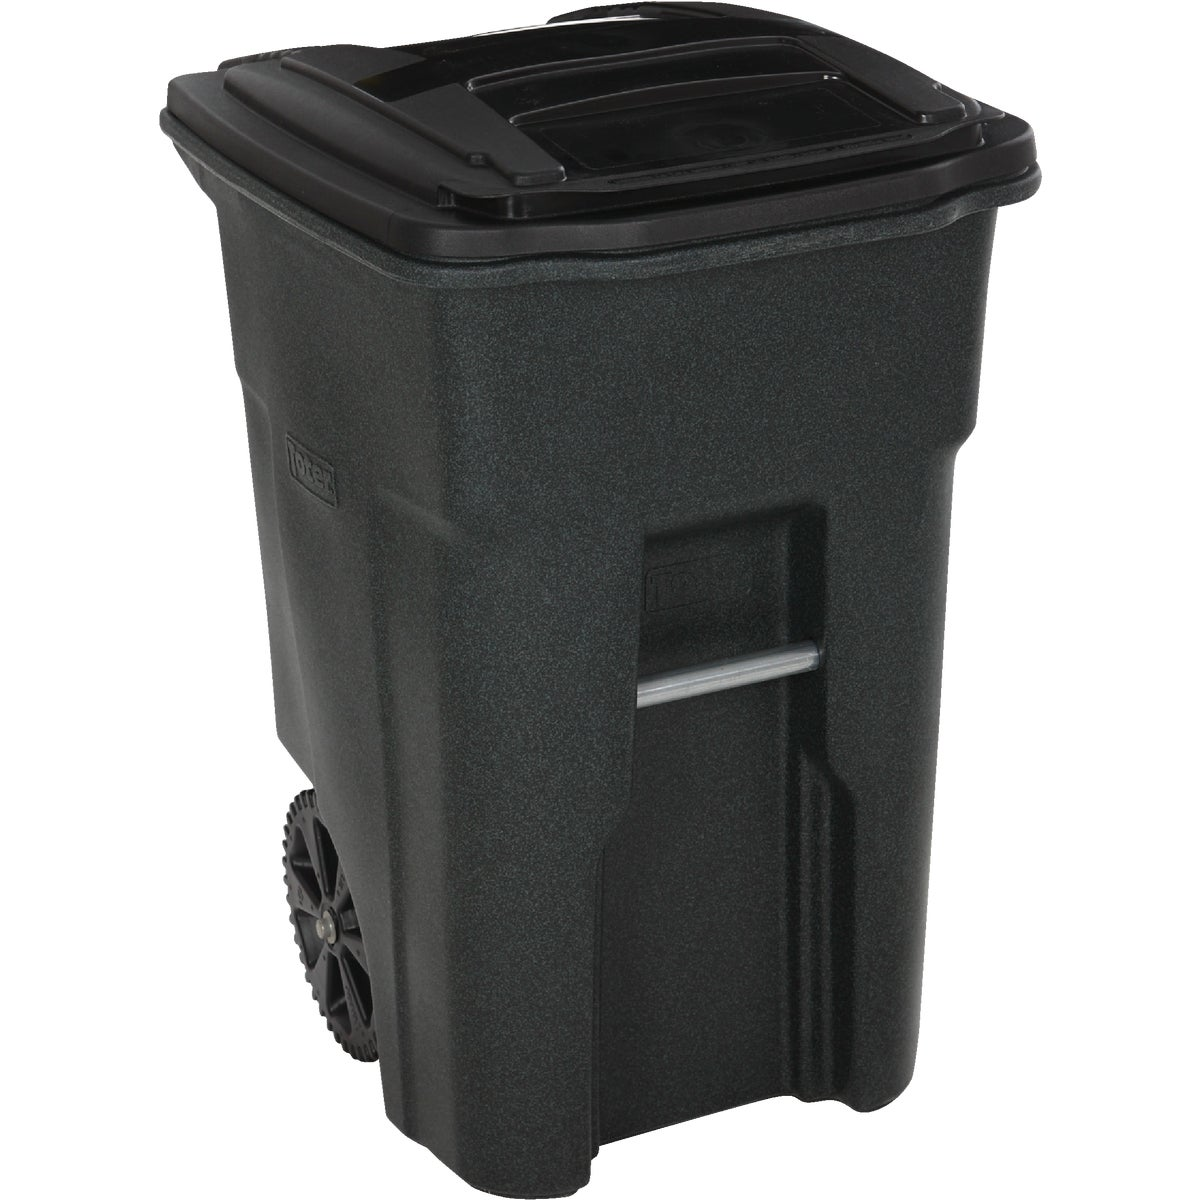 48GAL 2-WHEEL TRASH CAN - 025548-D1GRS by Toter